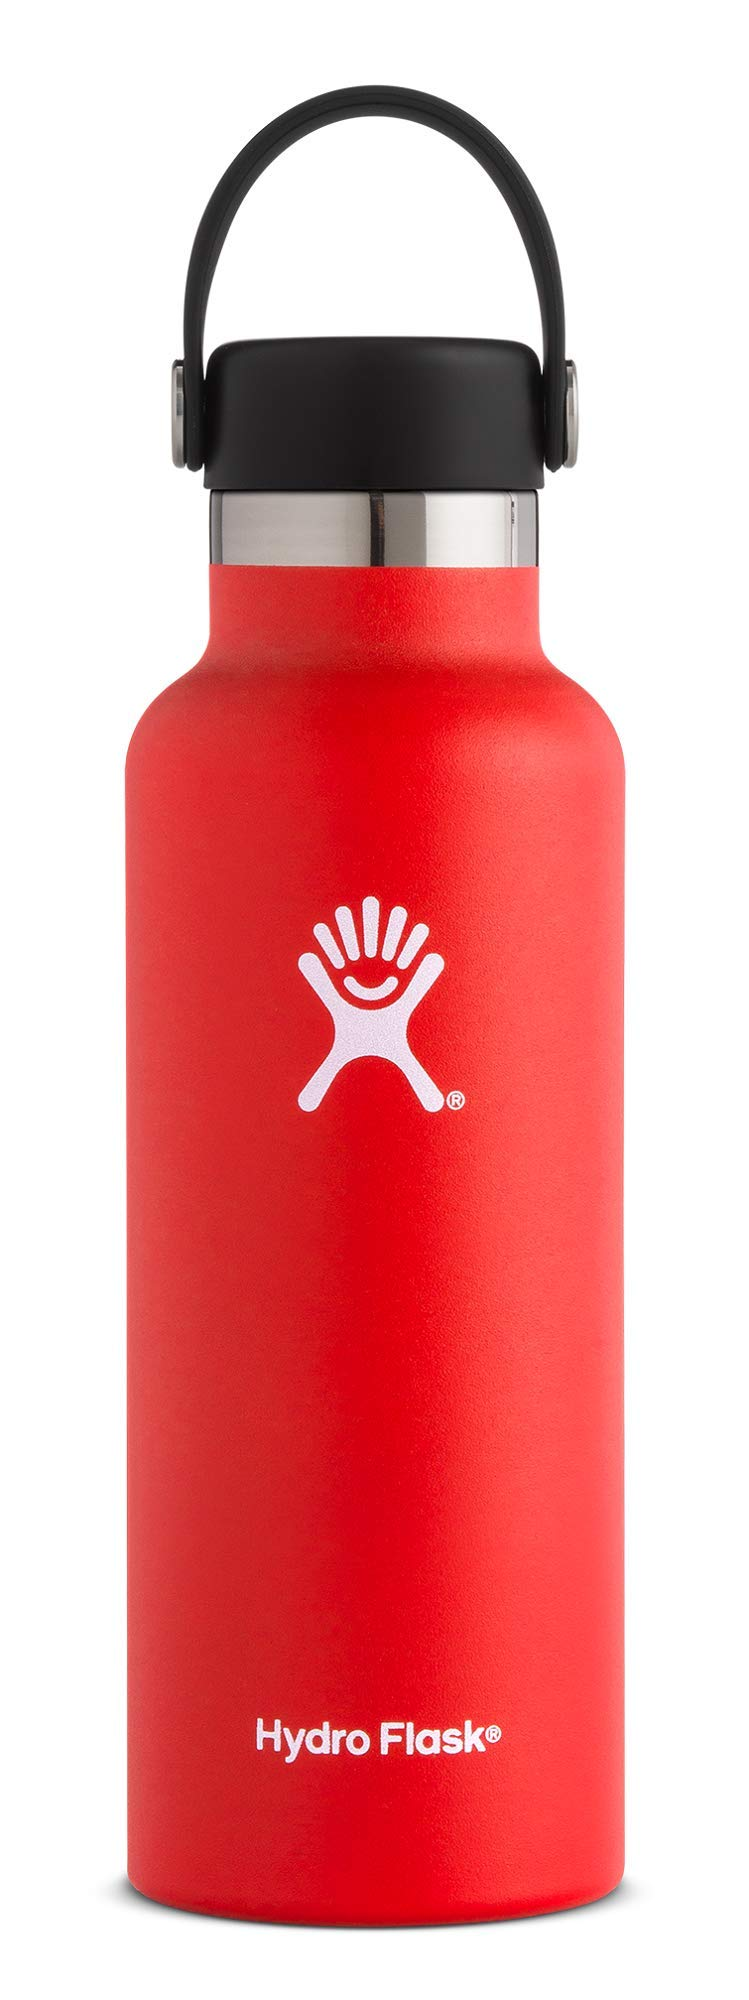 Hydro Flask 18 oz Double Wall Vacuum Insulated Stainless Steel Leak Proof Sports Water Bottle, Standard Mouth with BPA Free Flex Cap, Lava